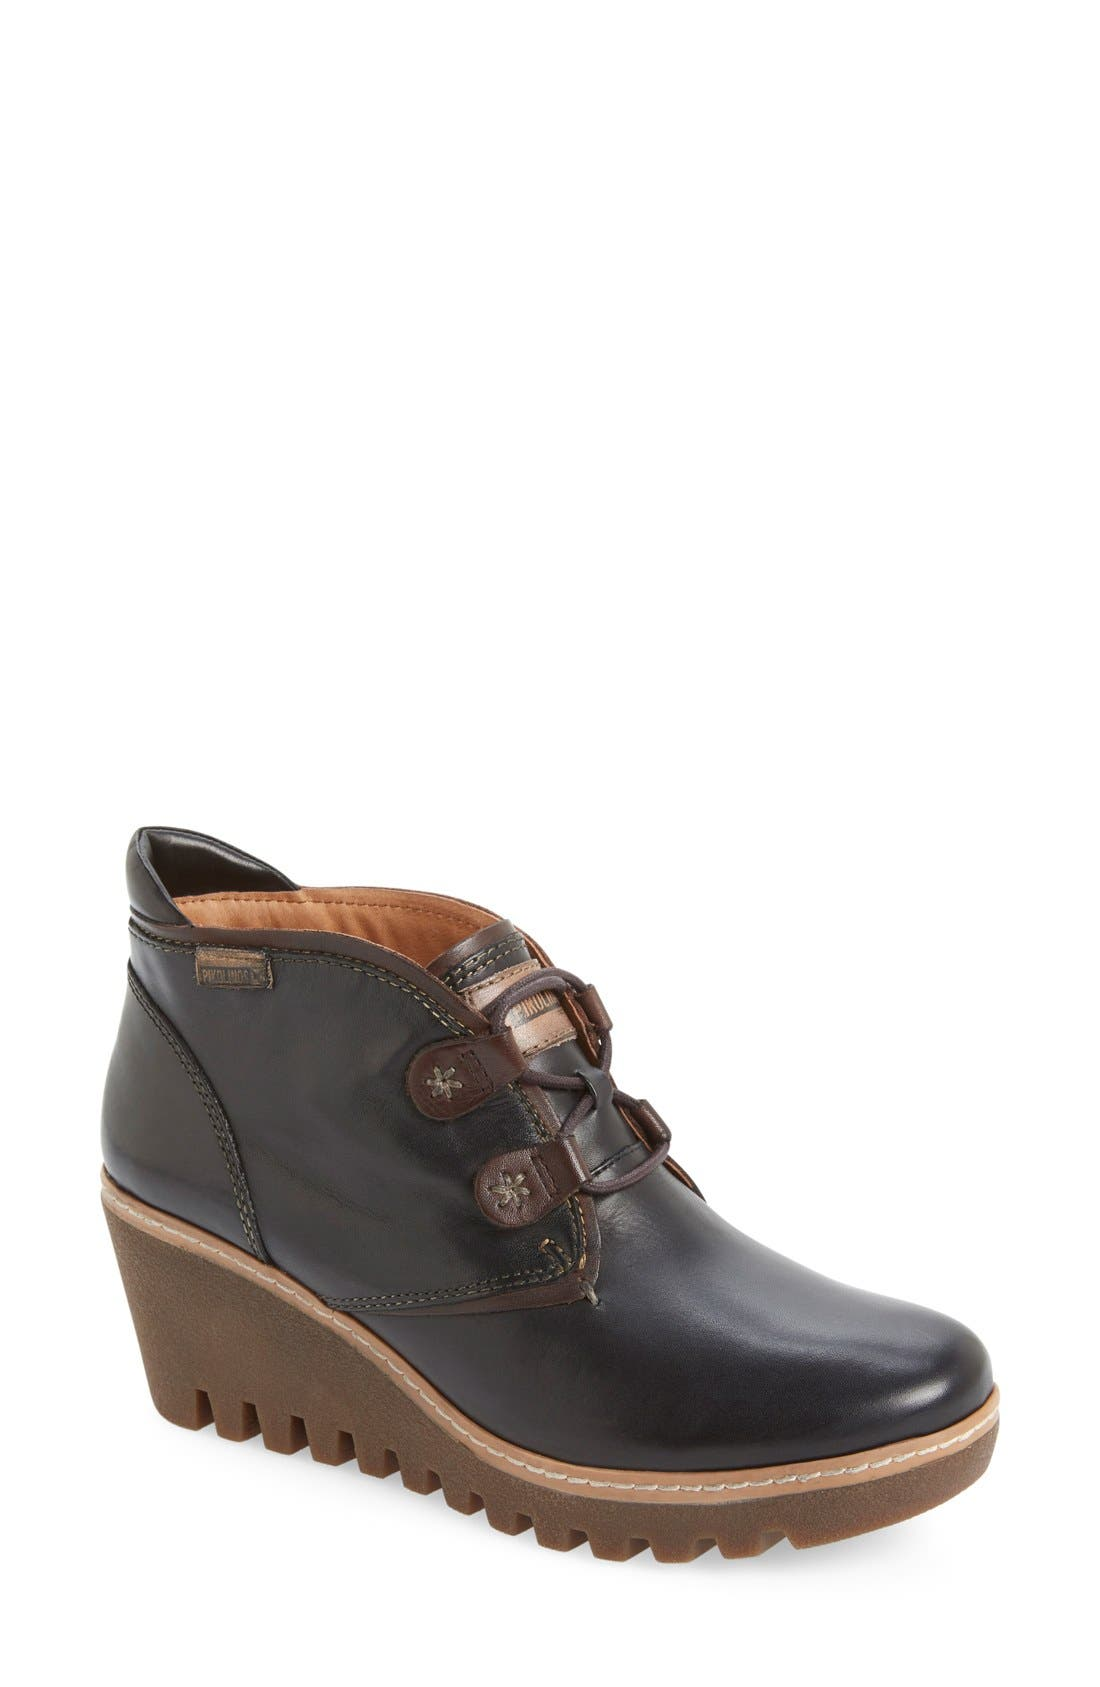 'Maple' Wedge Bootie,                             Main thumbnail 1, color,                             001